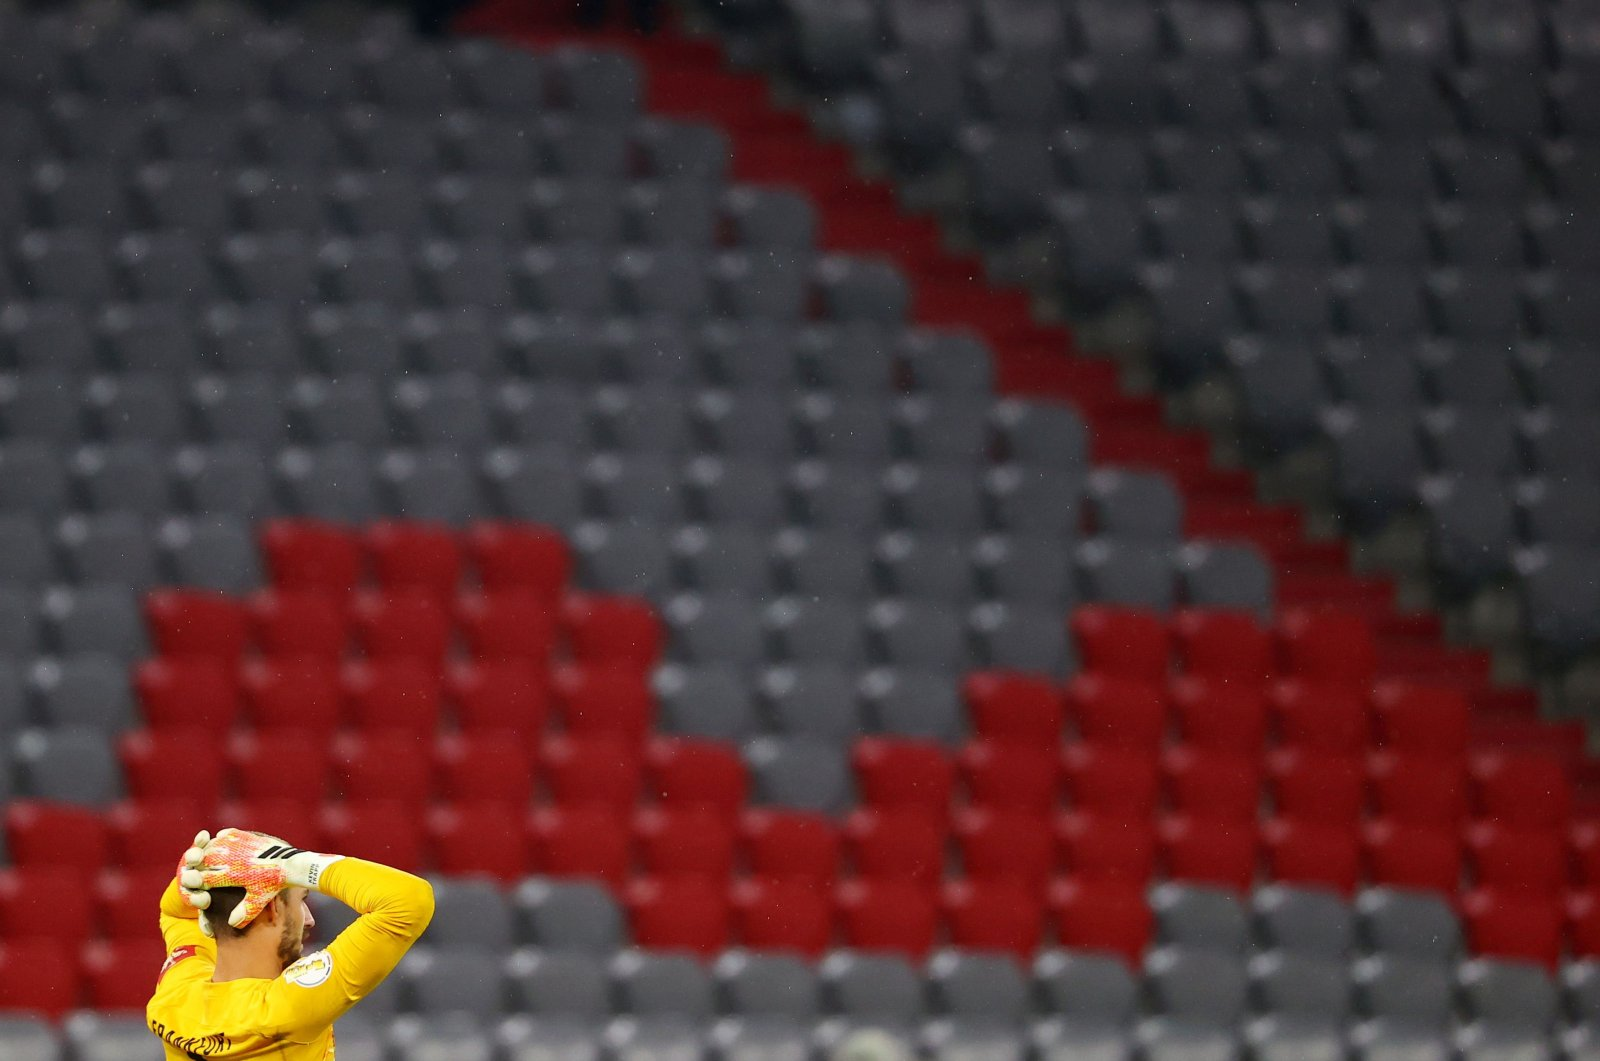 Frankfurt goalkeeper Kevin Trapp reacts in front of empty stands during the German Cup (DFB Pokal) semifinal match against Bayern Munich in Munich, Germany, June 10, 2020. (AFP Photo)